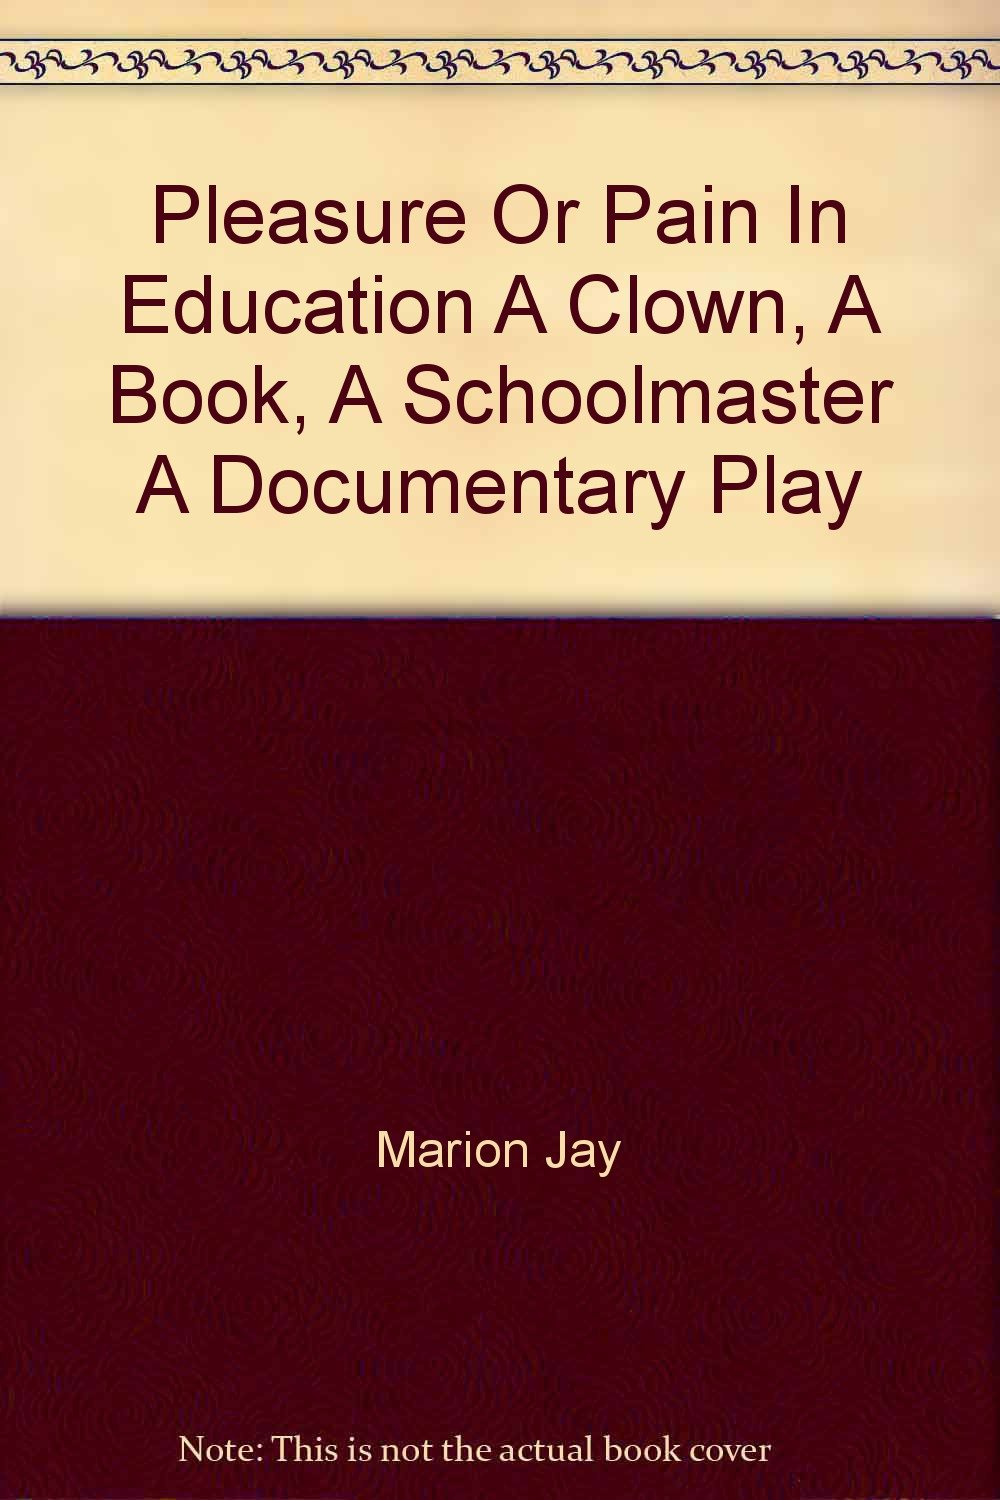 Pleasure or pain in education: A clown, a book, a schoolmaster ; a  documentary play Hardcover – 1958